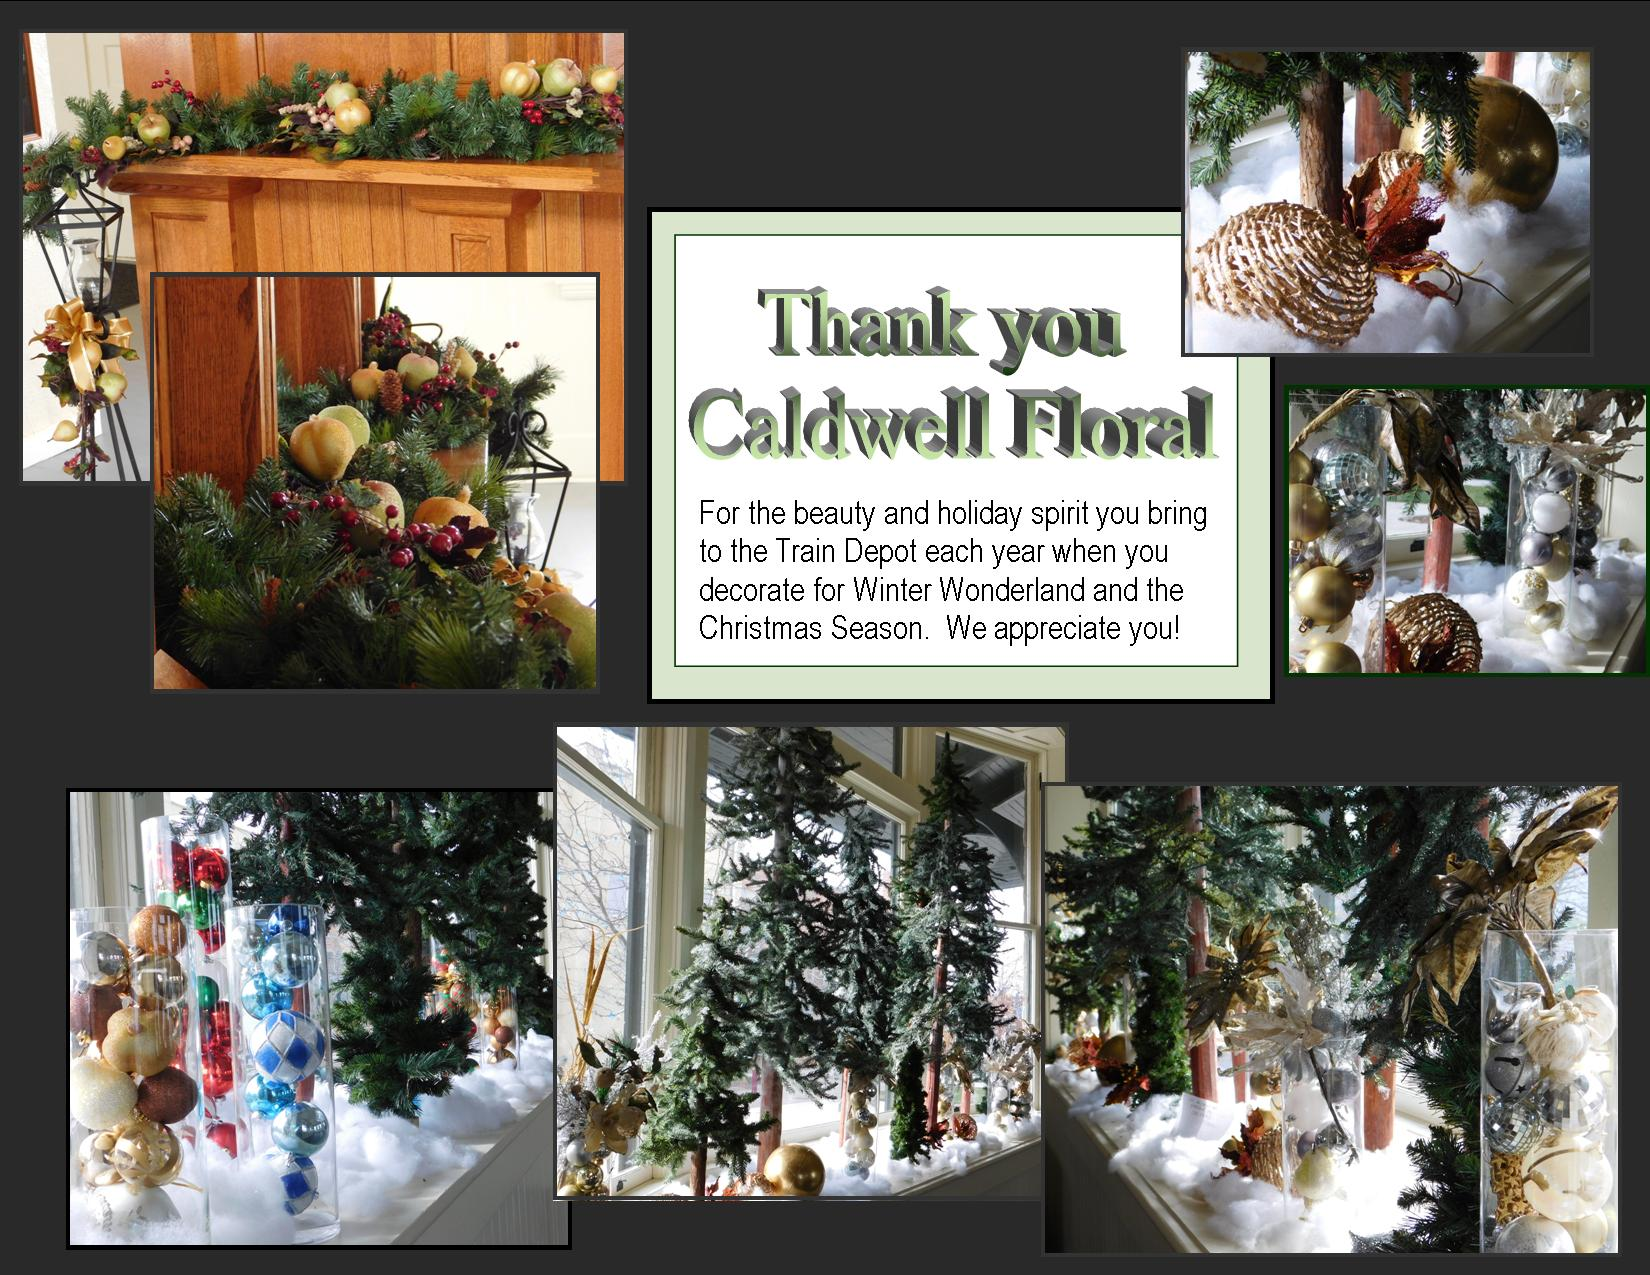 Caldwell Floral thank you image